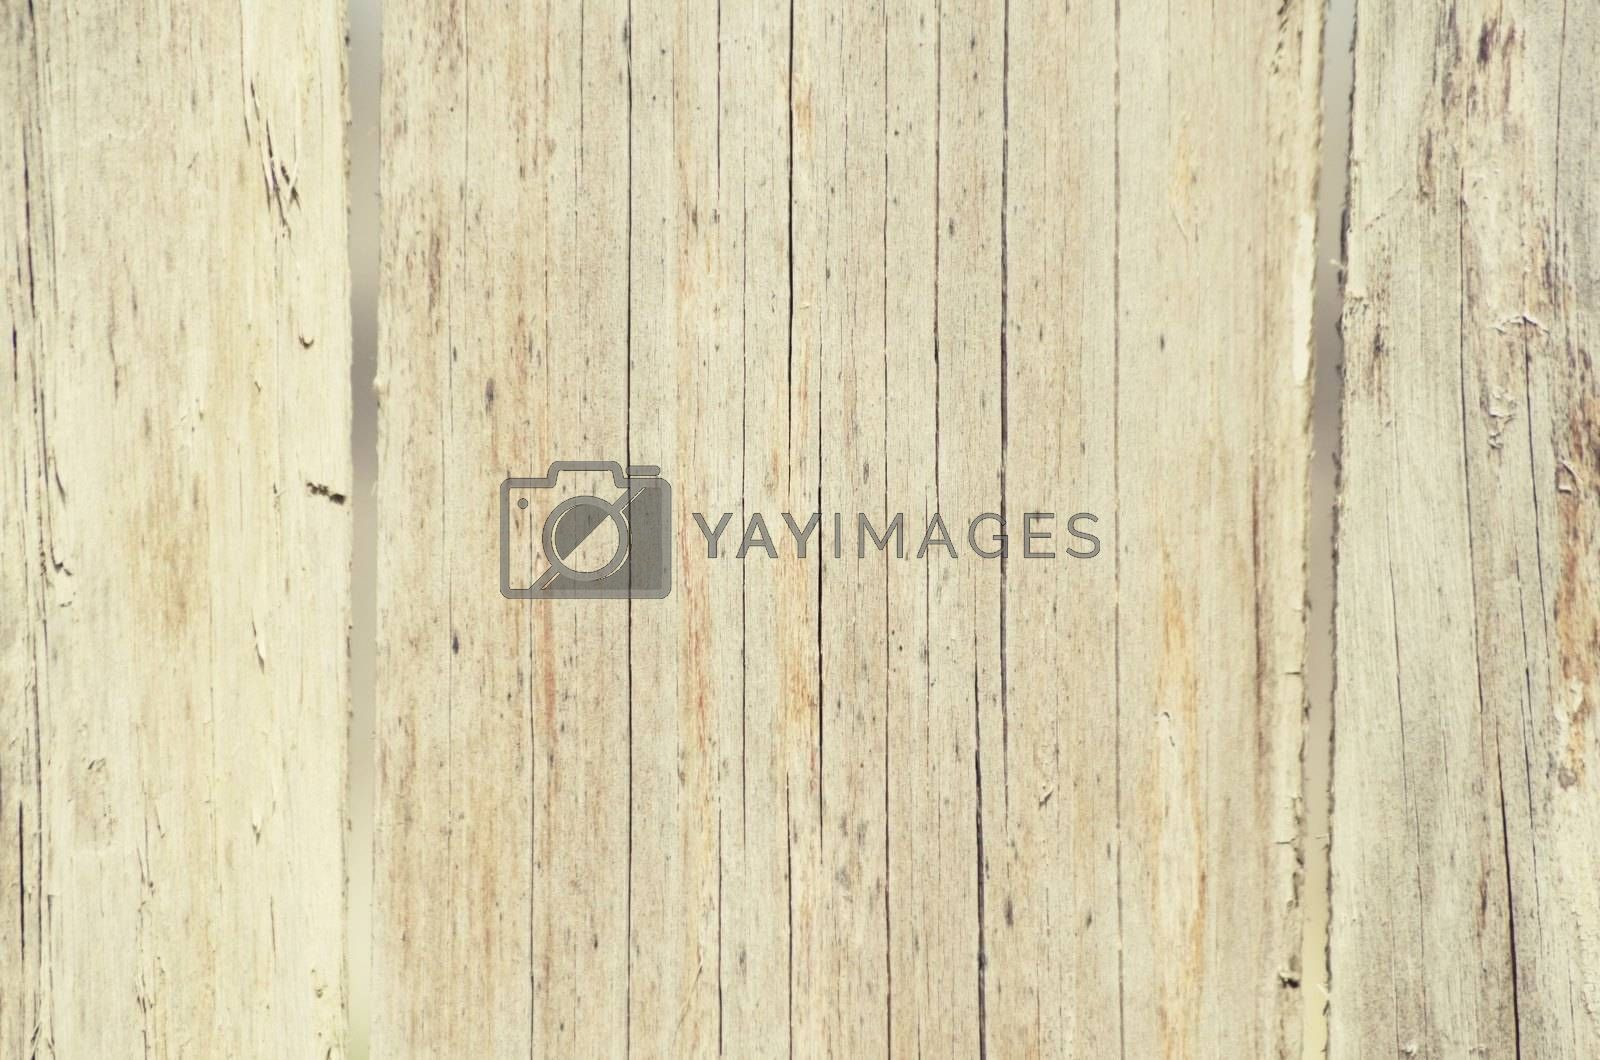 Wooden Background by razvodovska